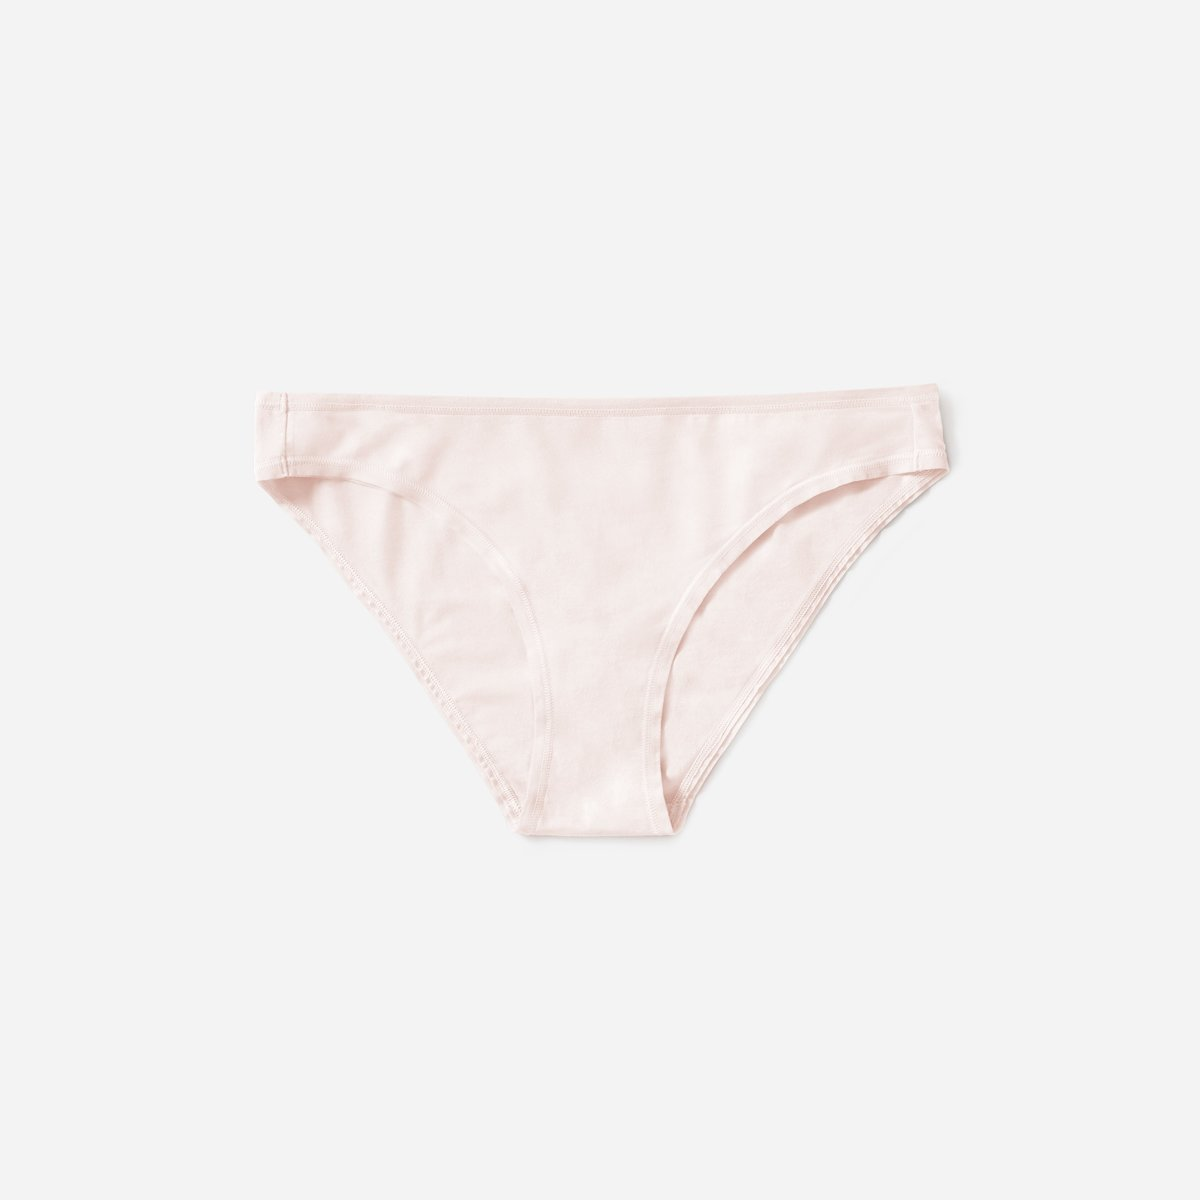 2a08faaede The six types of underwear every woman needs png 1200x1200 That 70s show  panties thong